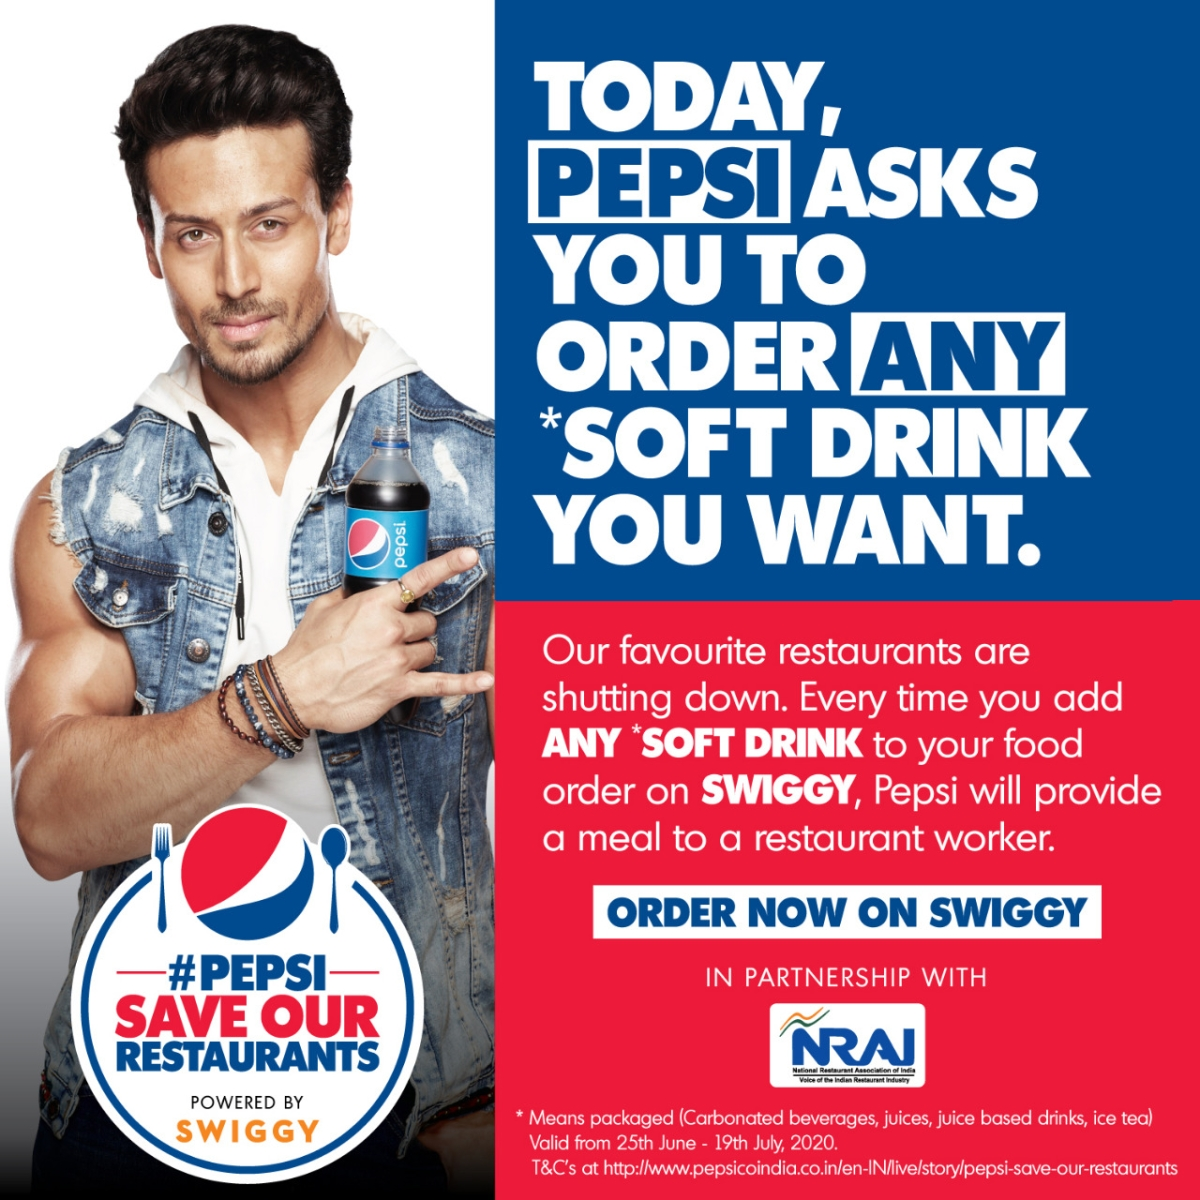 Pepsi joins hands with Swiggy and NRAI to support the restaurant community